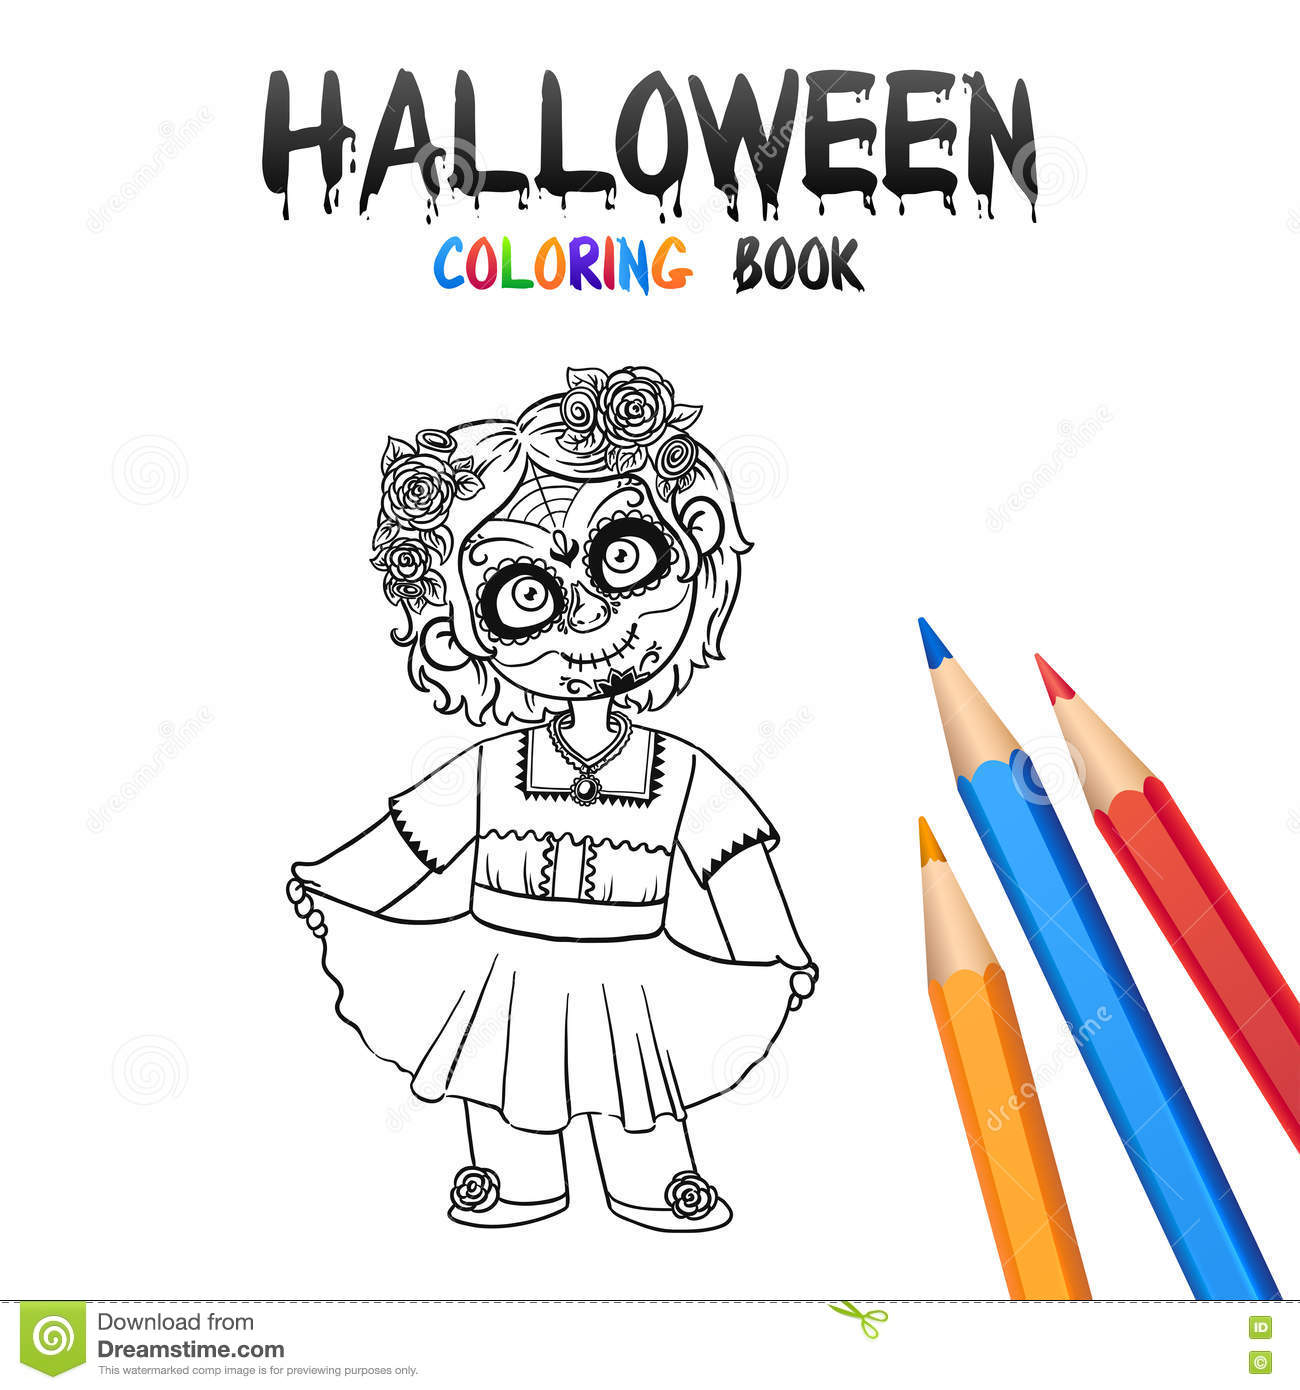 halloween coloring book cute baby cartoon character